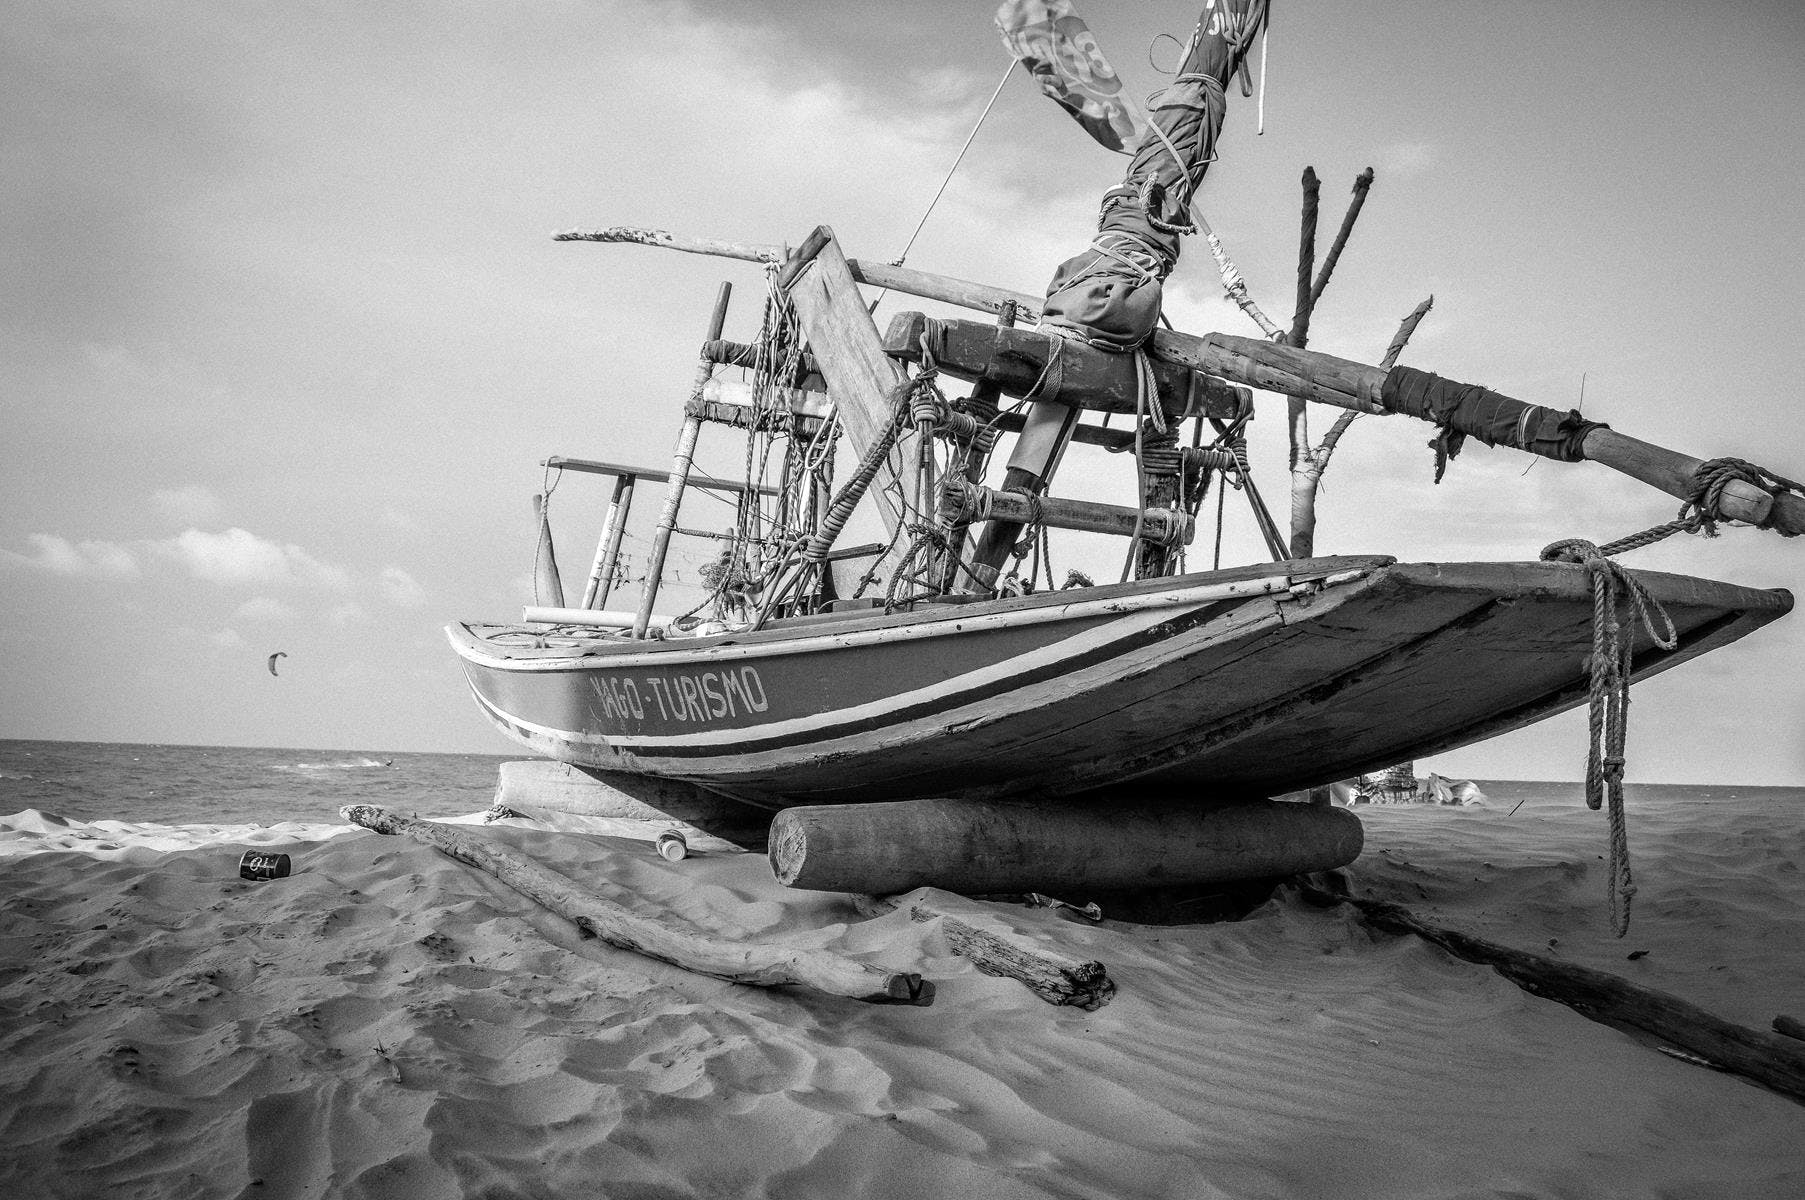 Monochrome Photography of Boat